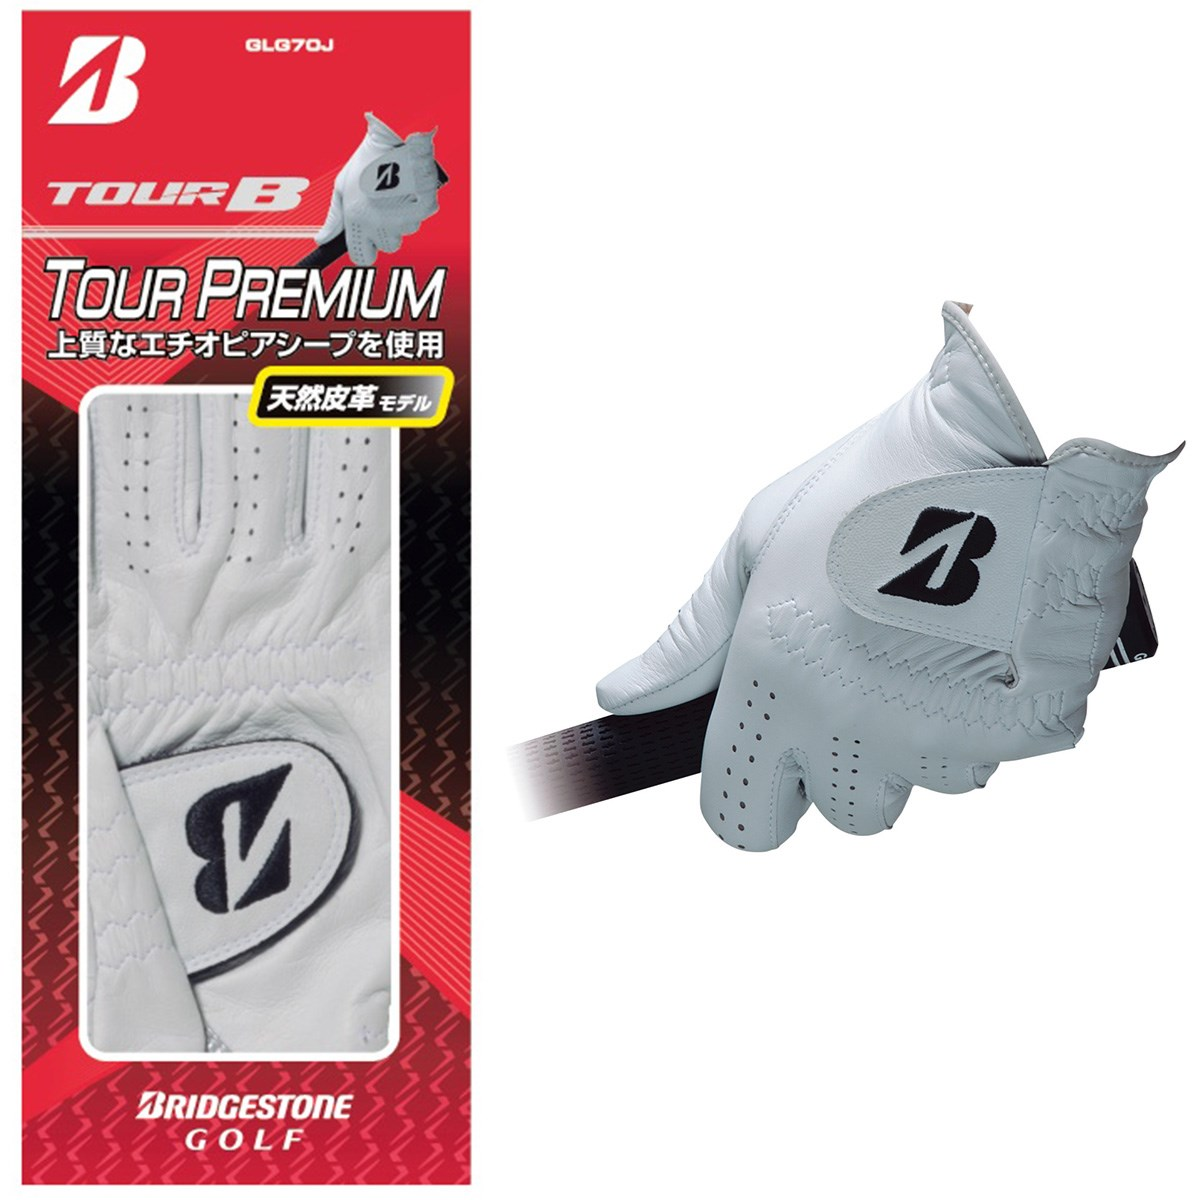 ブリヂストン(BRIDGESTONE GOLF) TOUR PREMIUM グローブ